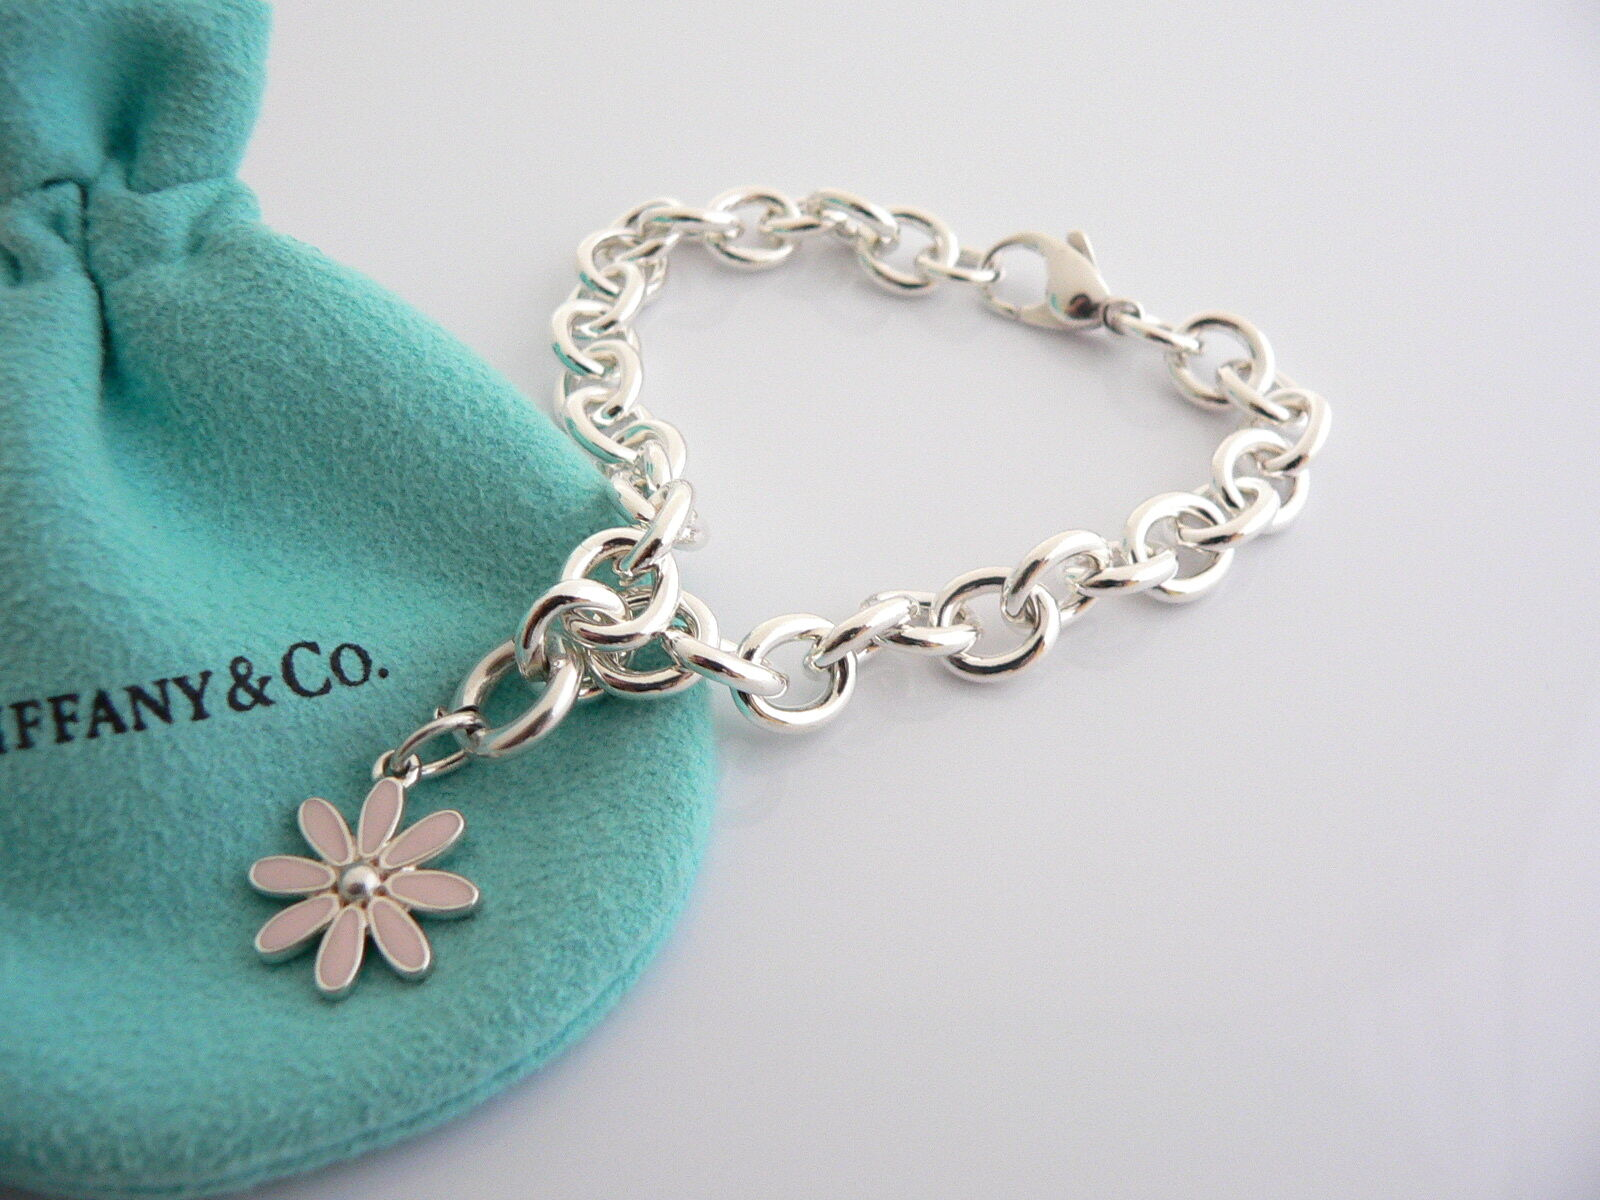 Tiffany & Co Silver Pink Enamel Daisy Flower Bracelet Bangle Charm Clasp Gift